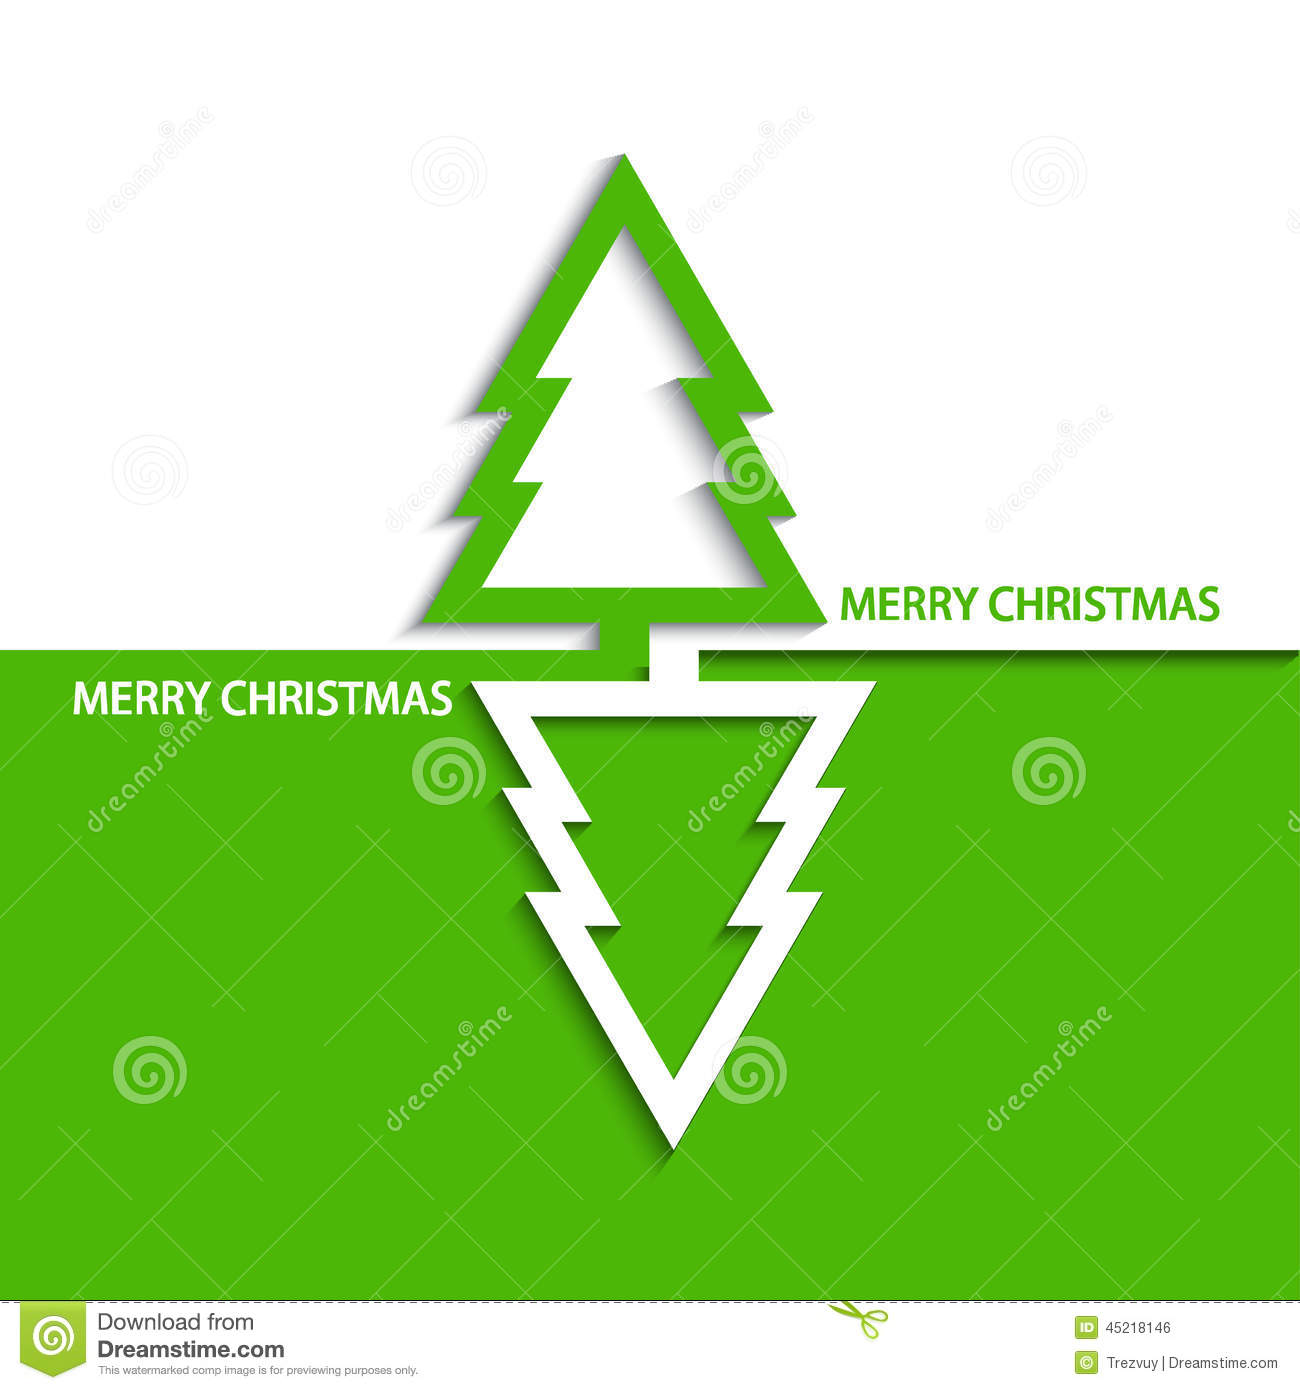 Vector Modern Christmas Tree Stock Vector - Image: 45218146